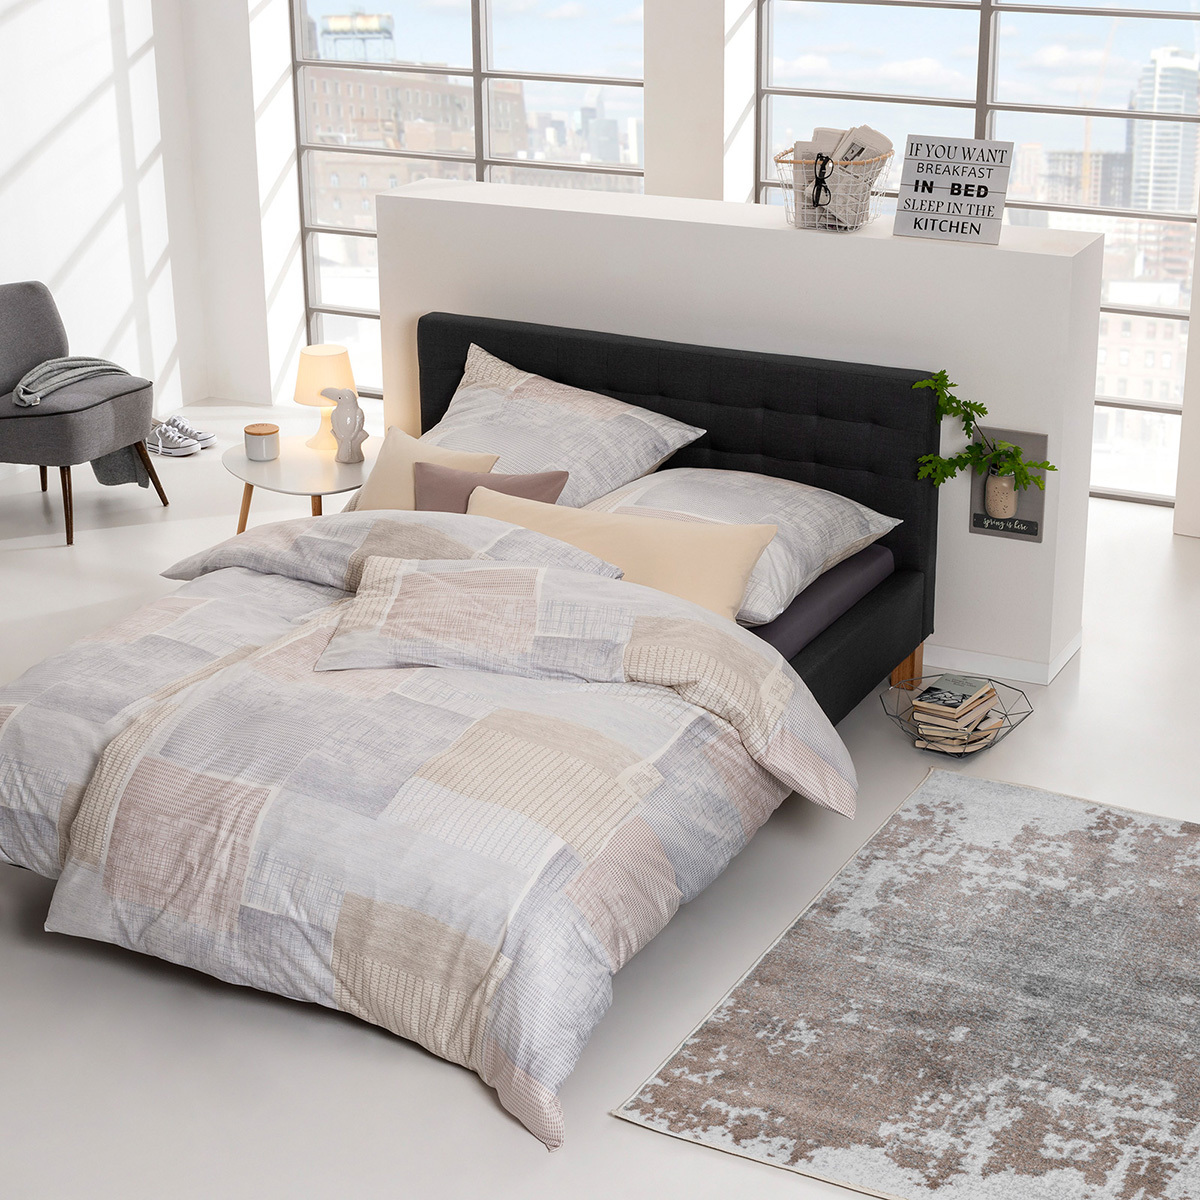 estella mako interlock jersey bettw sche milos sand g nstig online kaufen bei bettwaren shop. Black Bedroom Furniture Sets. Home Design Ideas